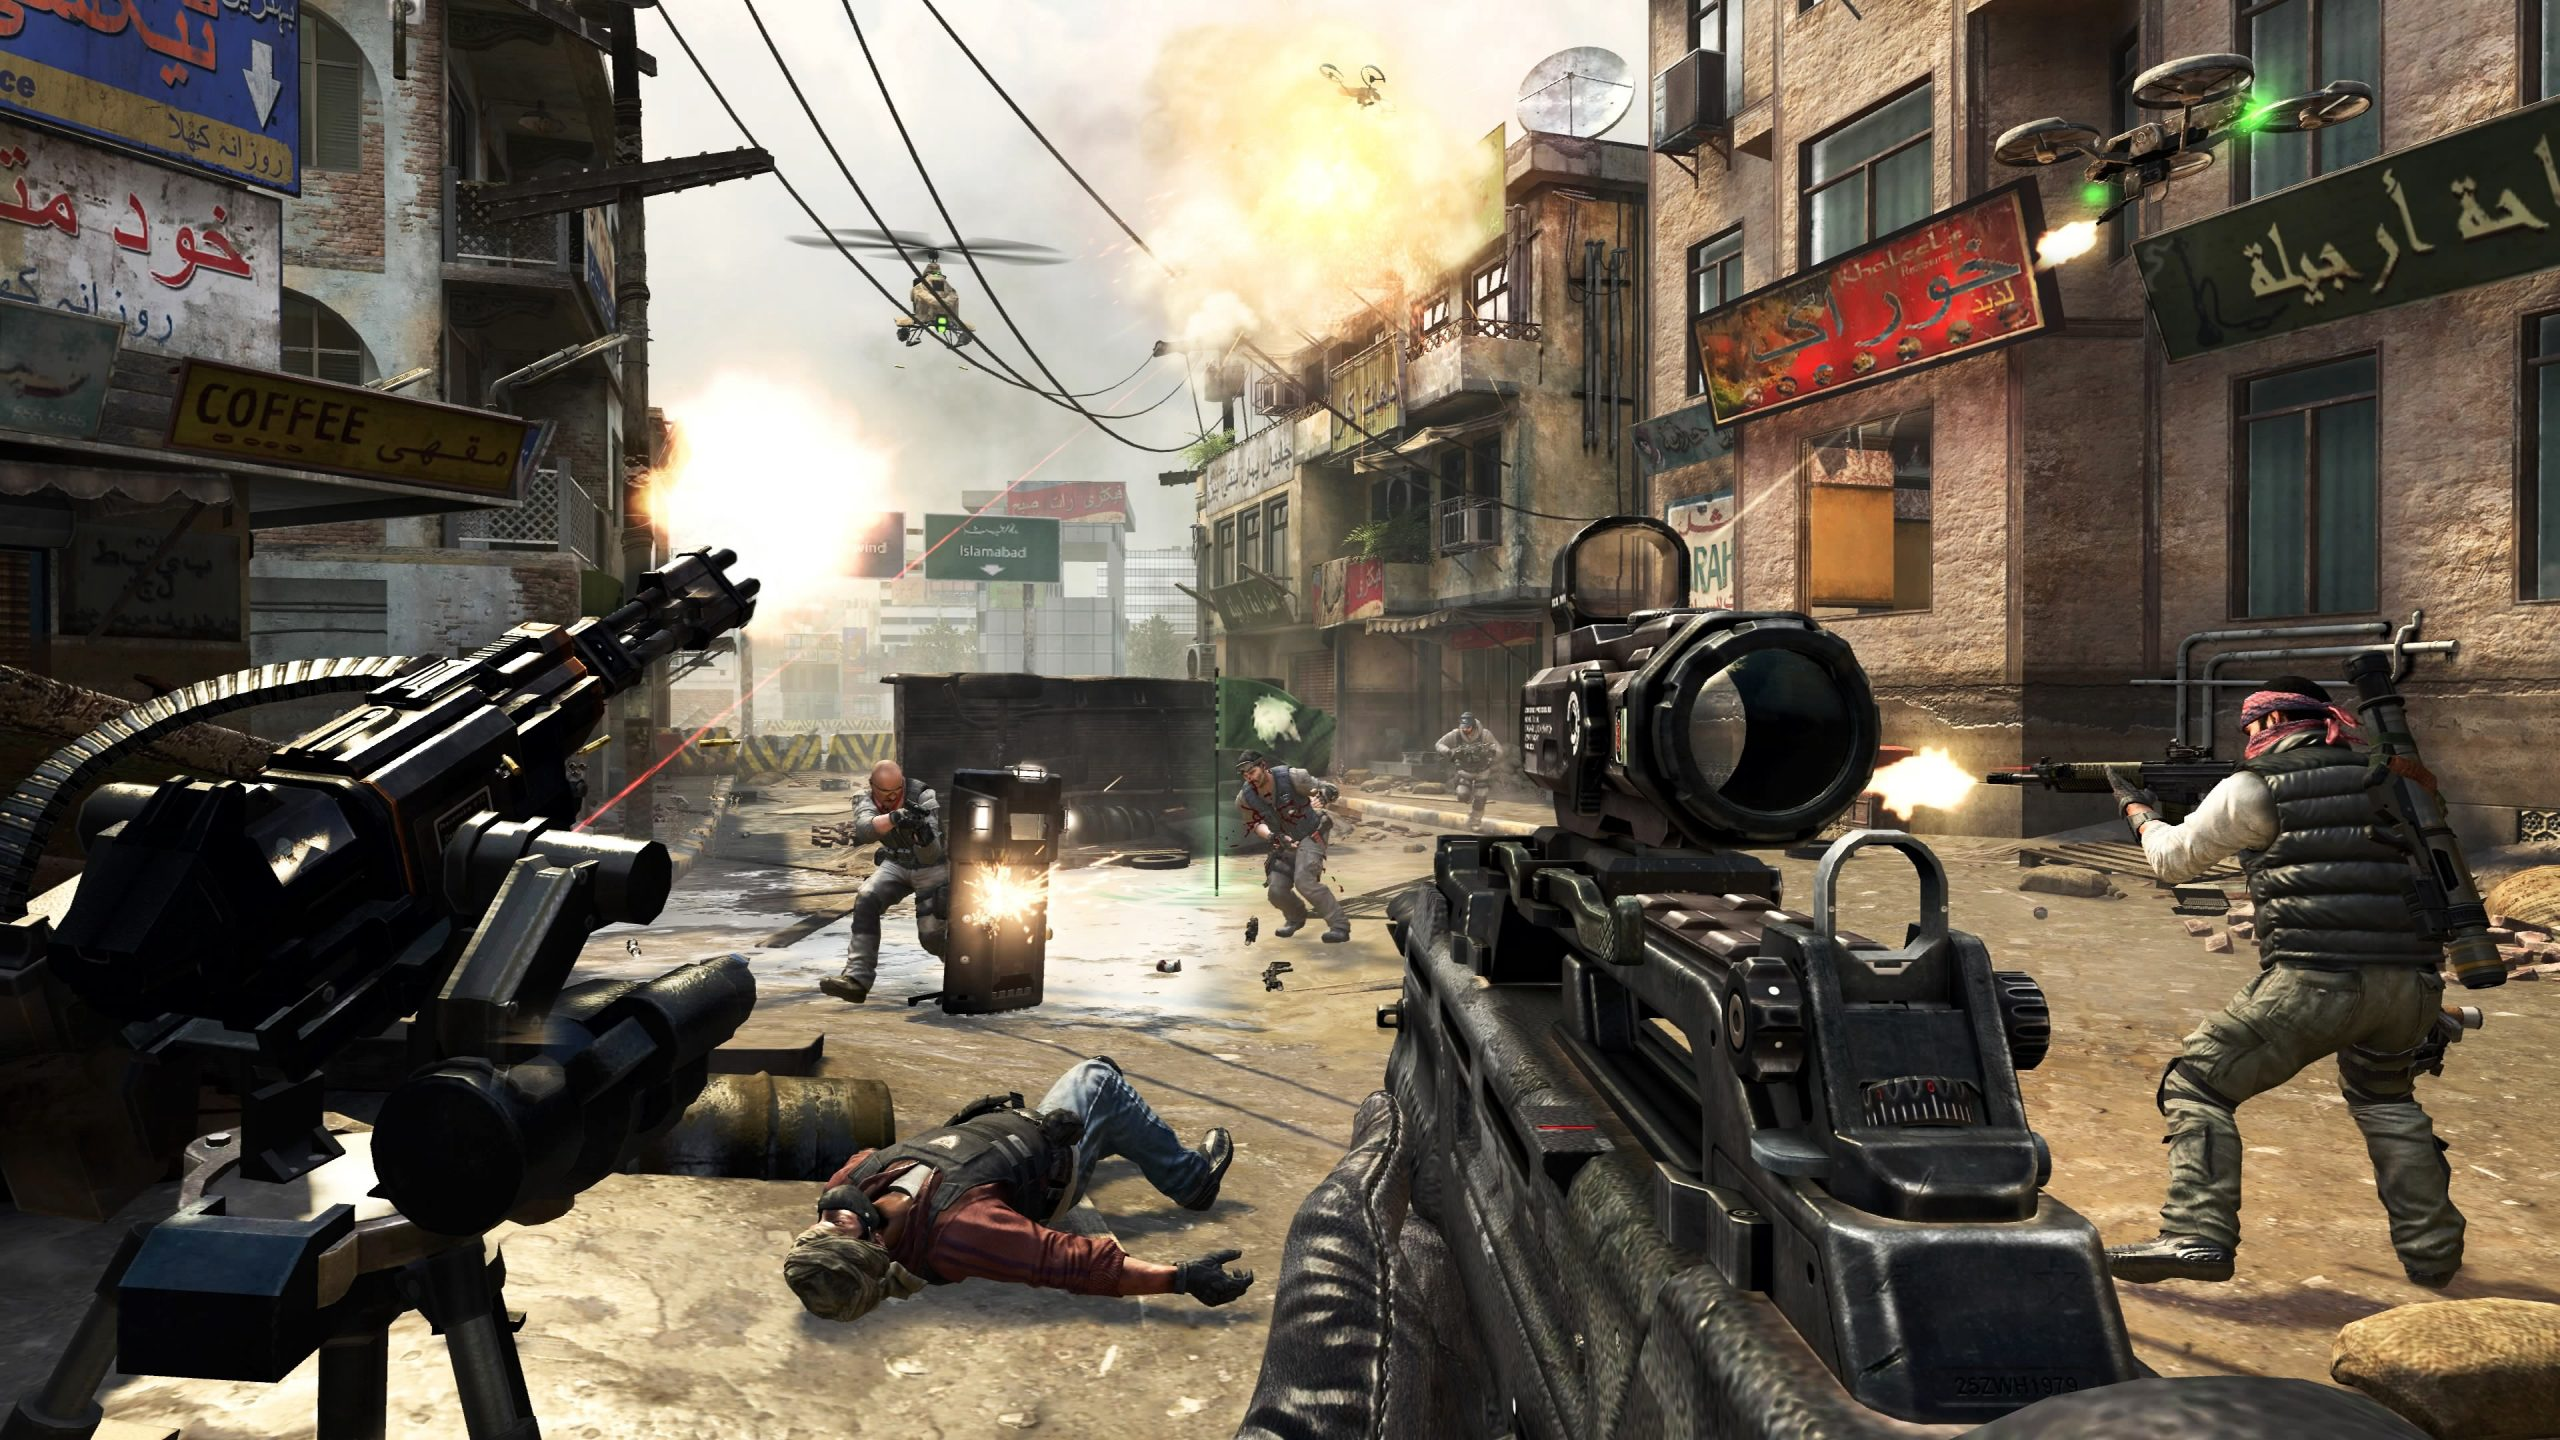 Call Of Duty Black Ops 2 Pc Gratuit - Call Of Duty Black Ops pour Jeux De Tire Gratuit